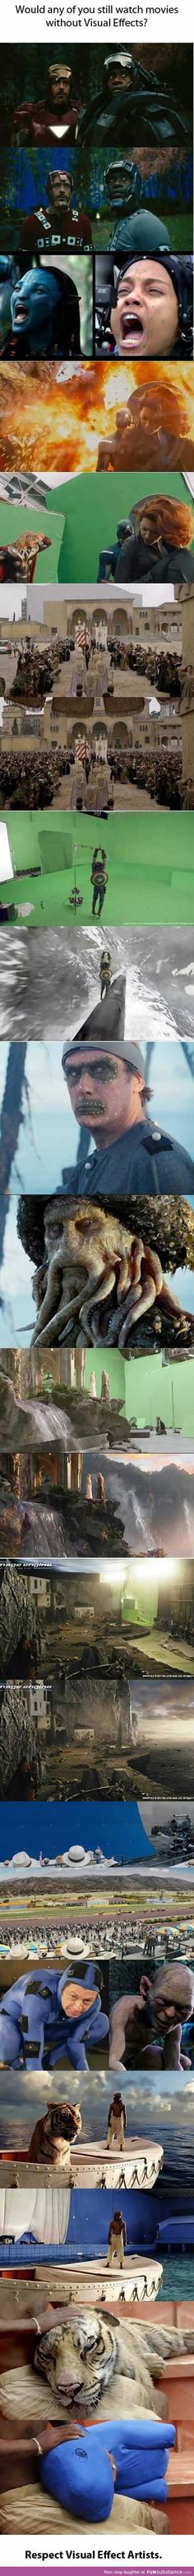 Behind the special effects..